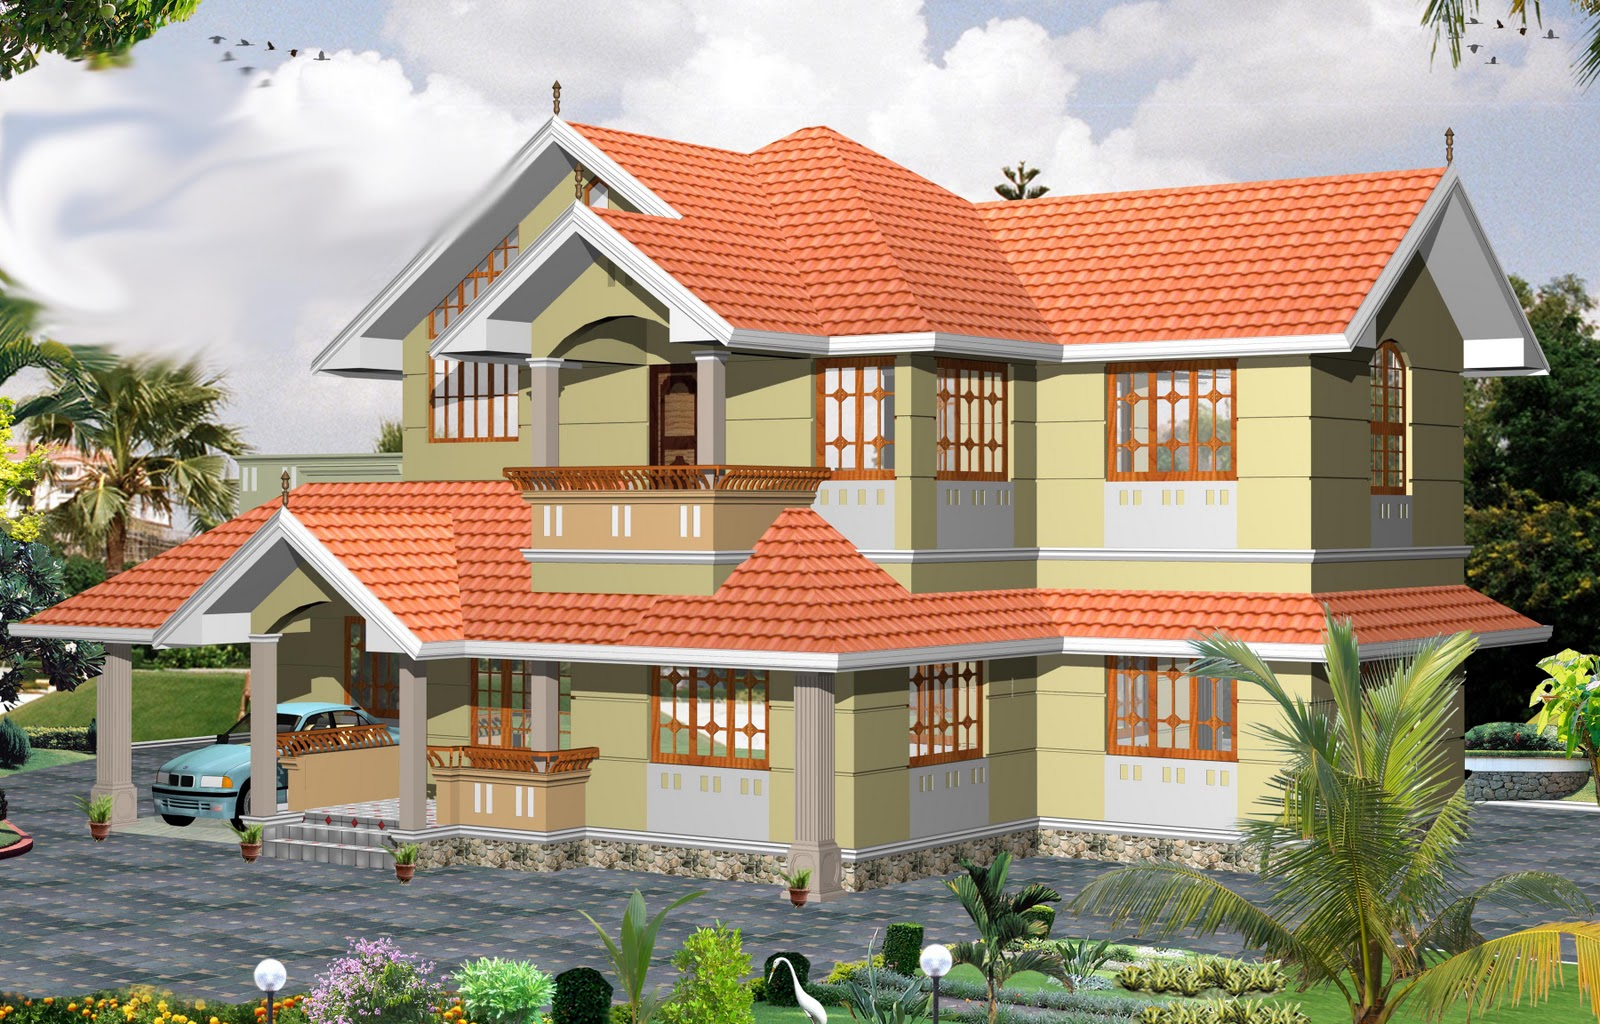 Kerala building construction 2000 sqft 3bhk house plan kerala home floor plans with photo Design home free